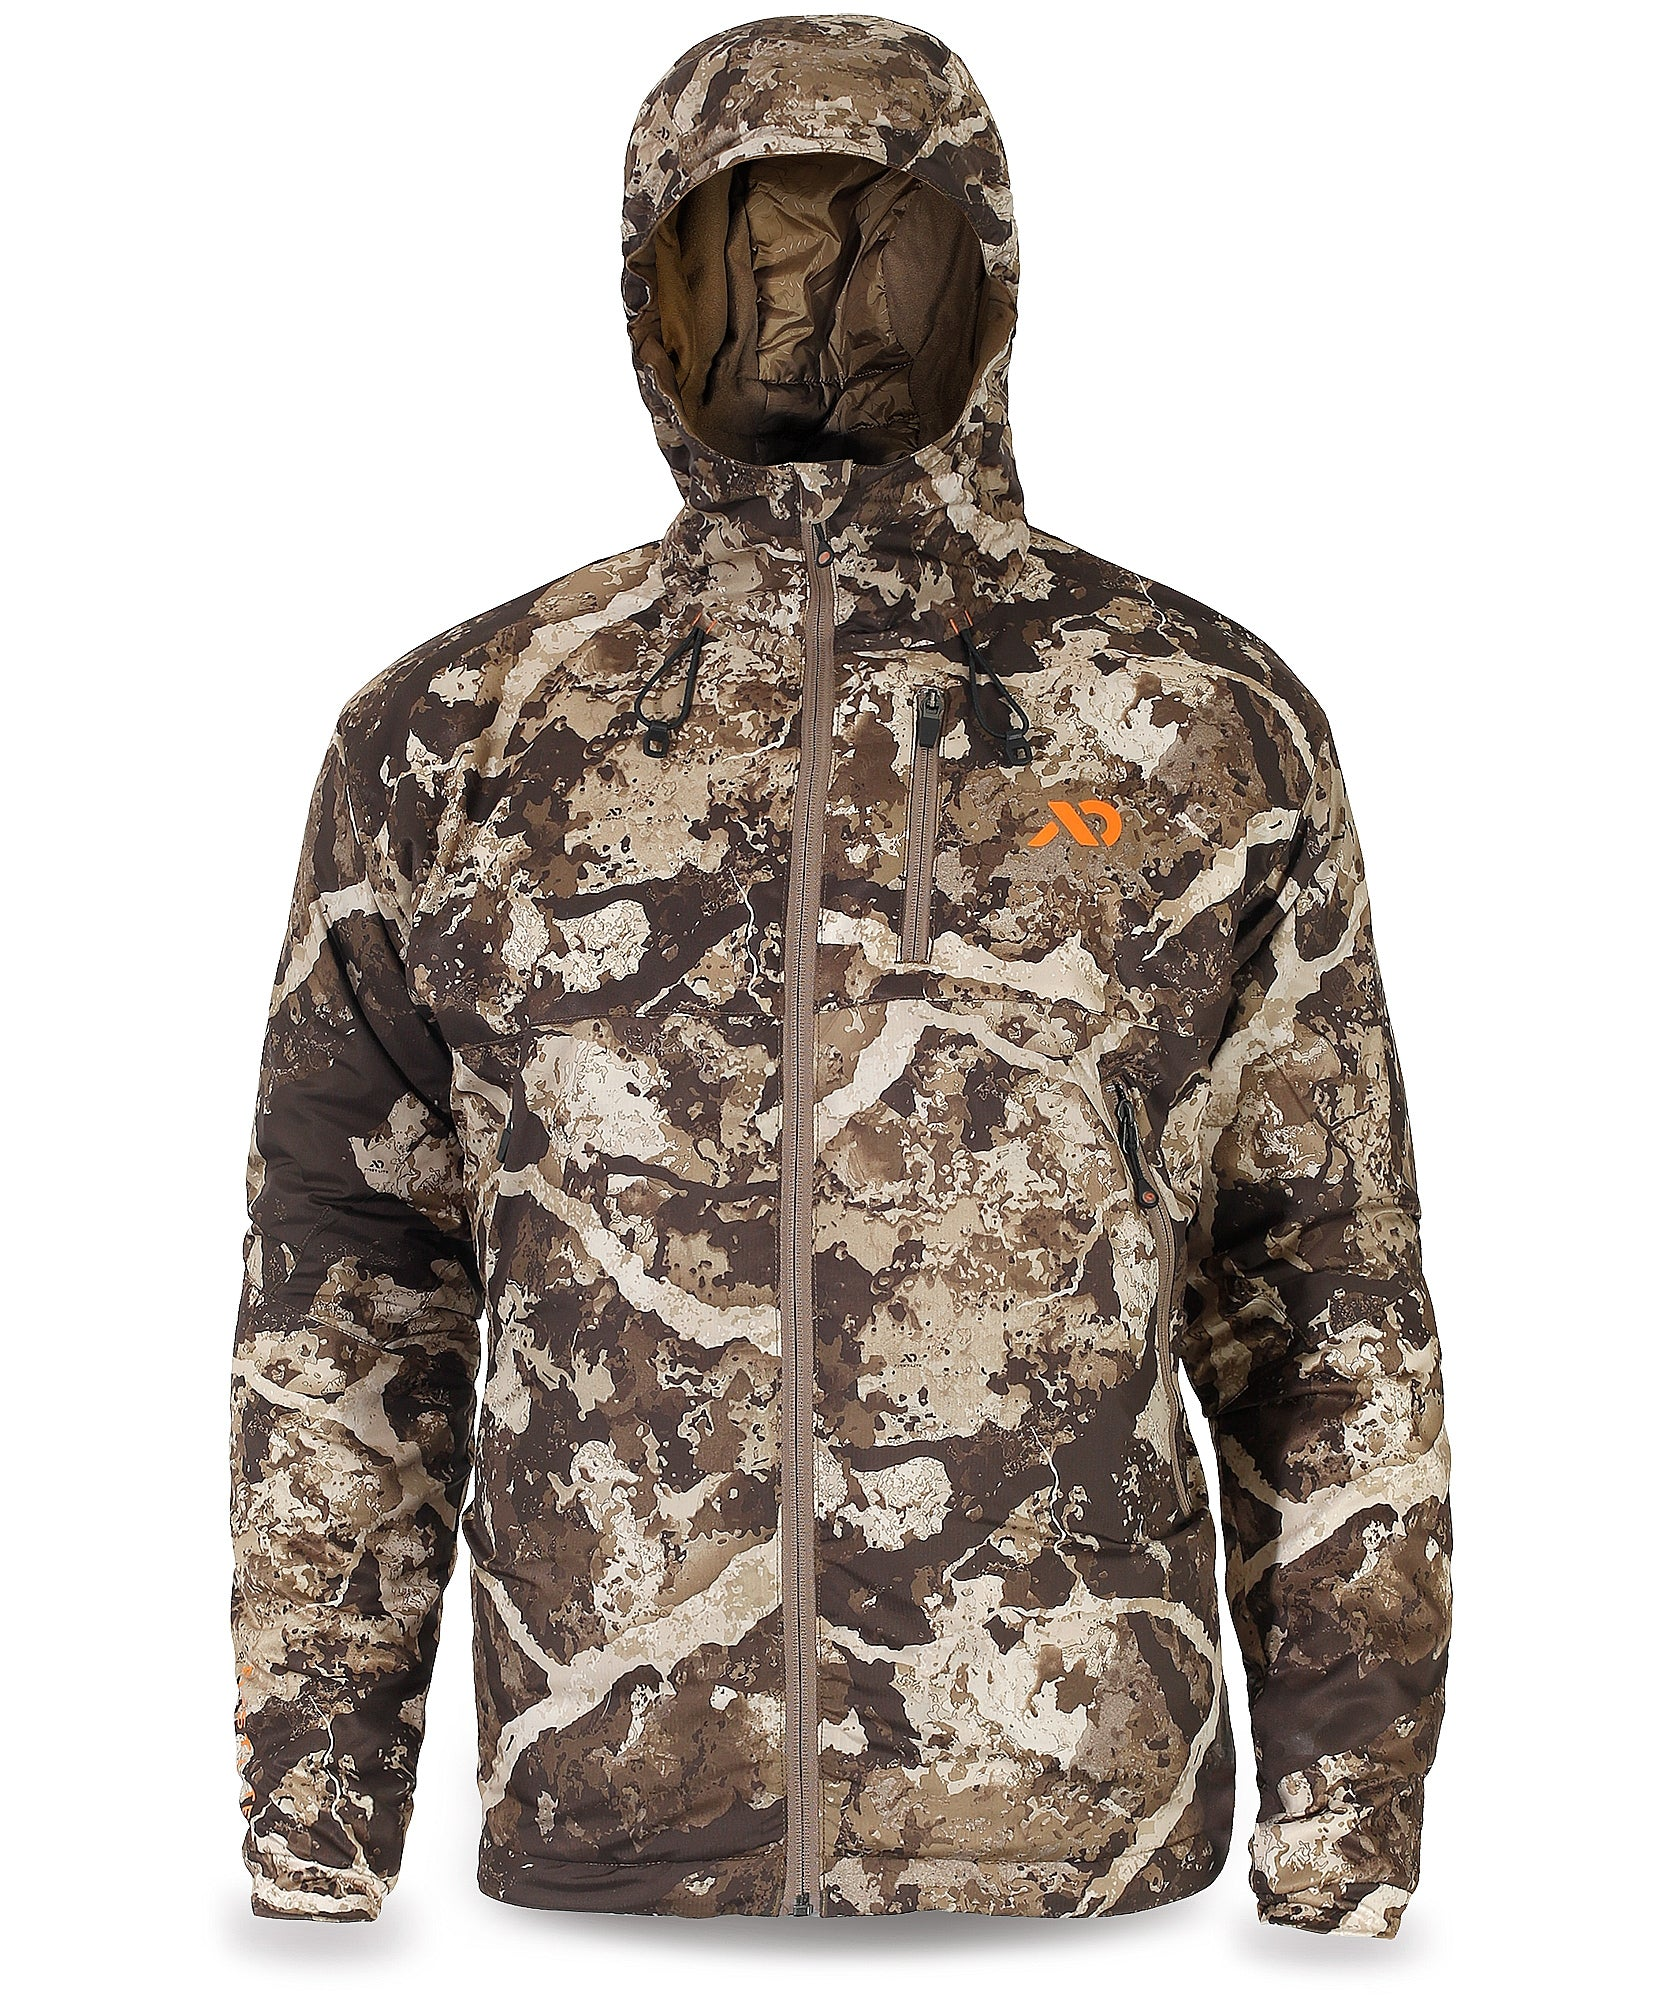 33a7ad4e943ac Uncompahgre Puffy Insulated Jacket – First Lite Performance Hunting